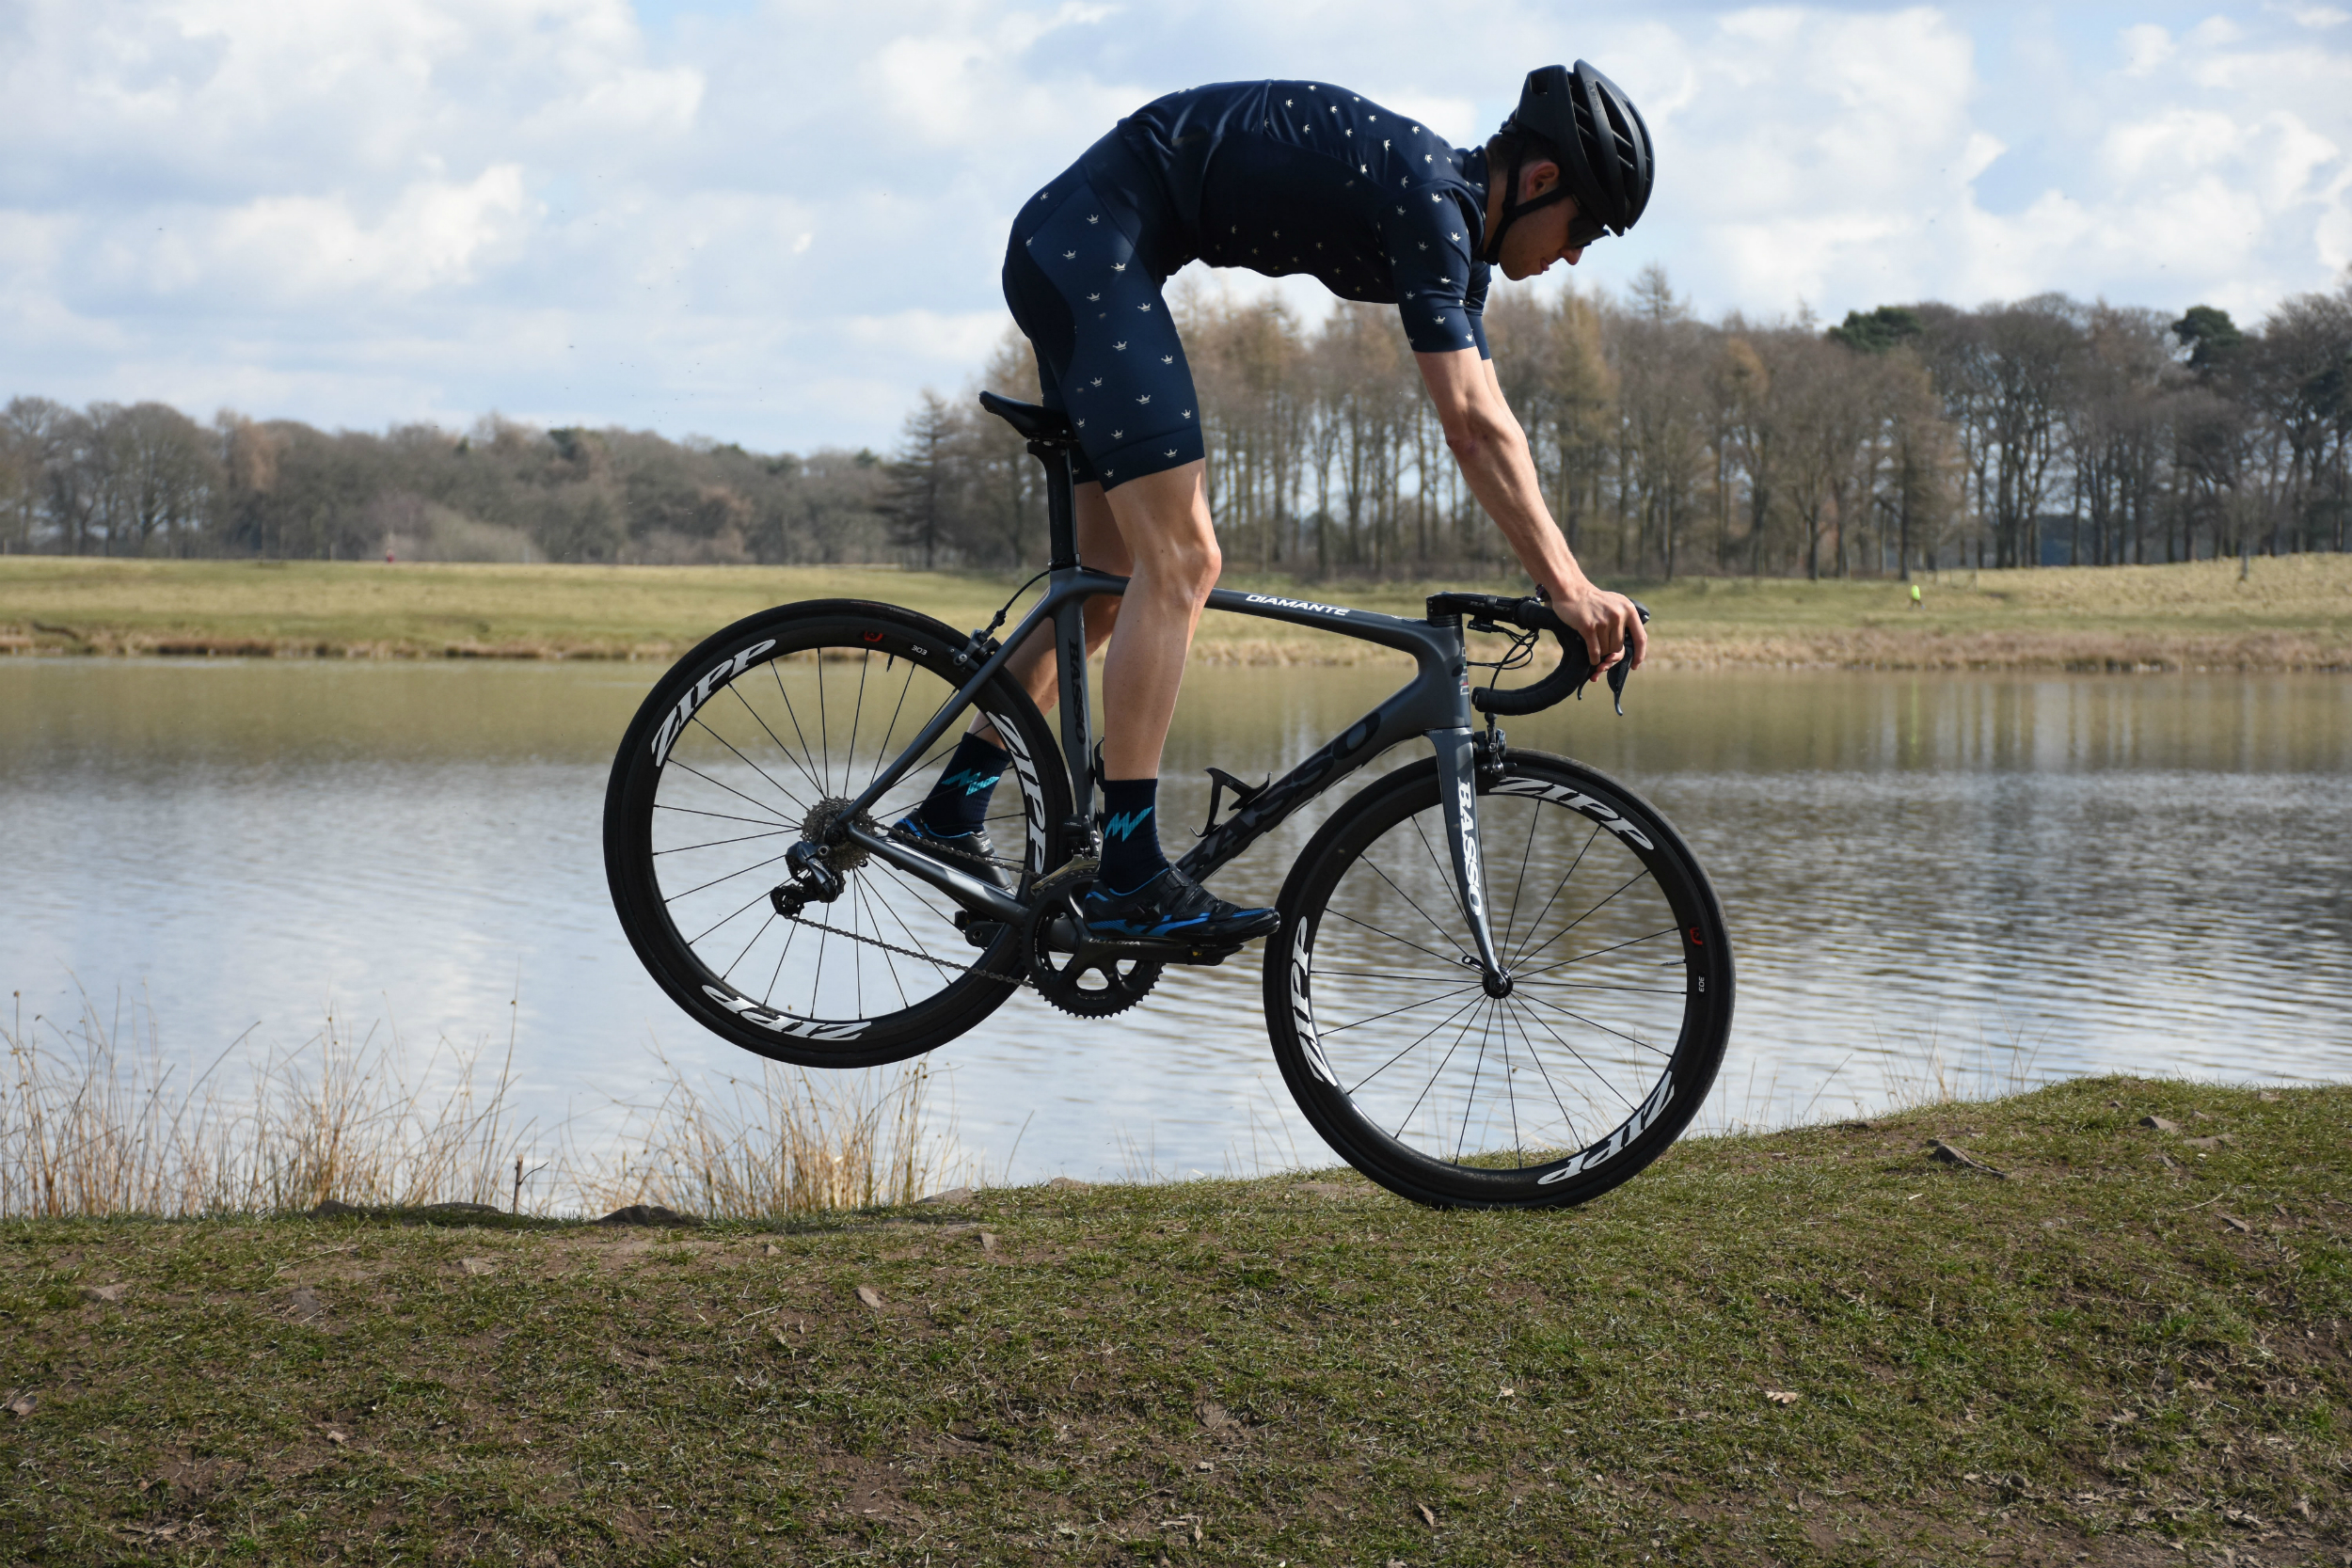 A cyclist doing a nose-stand in the morvelo SS18 KOM range